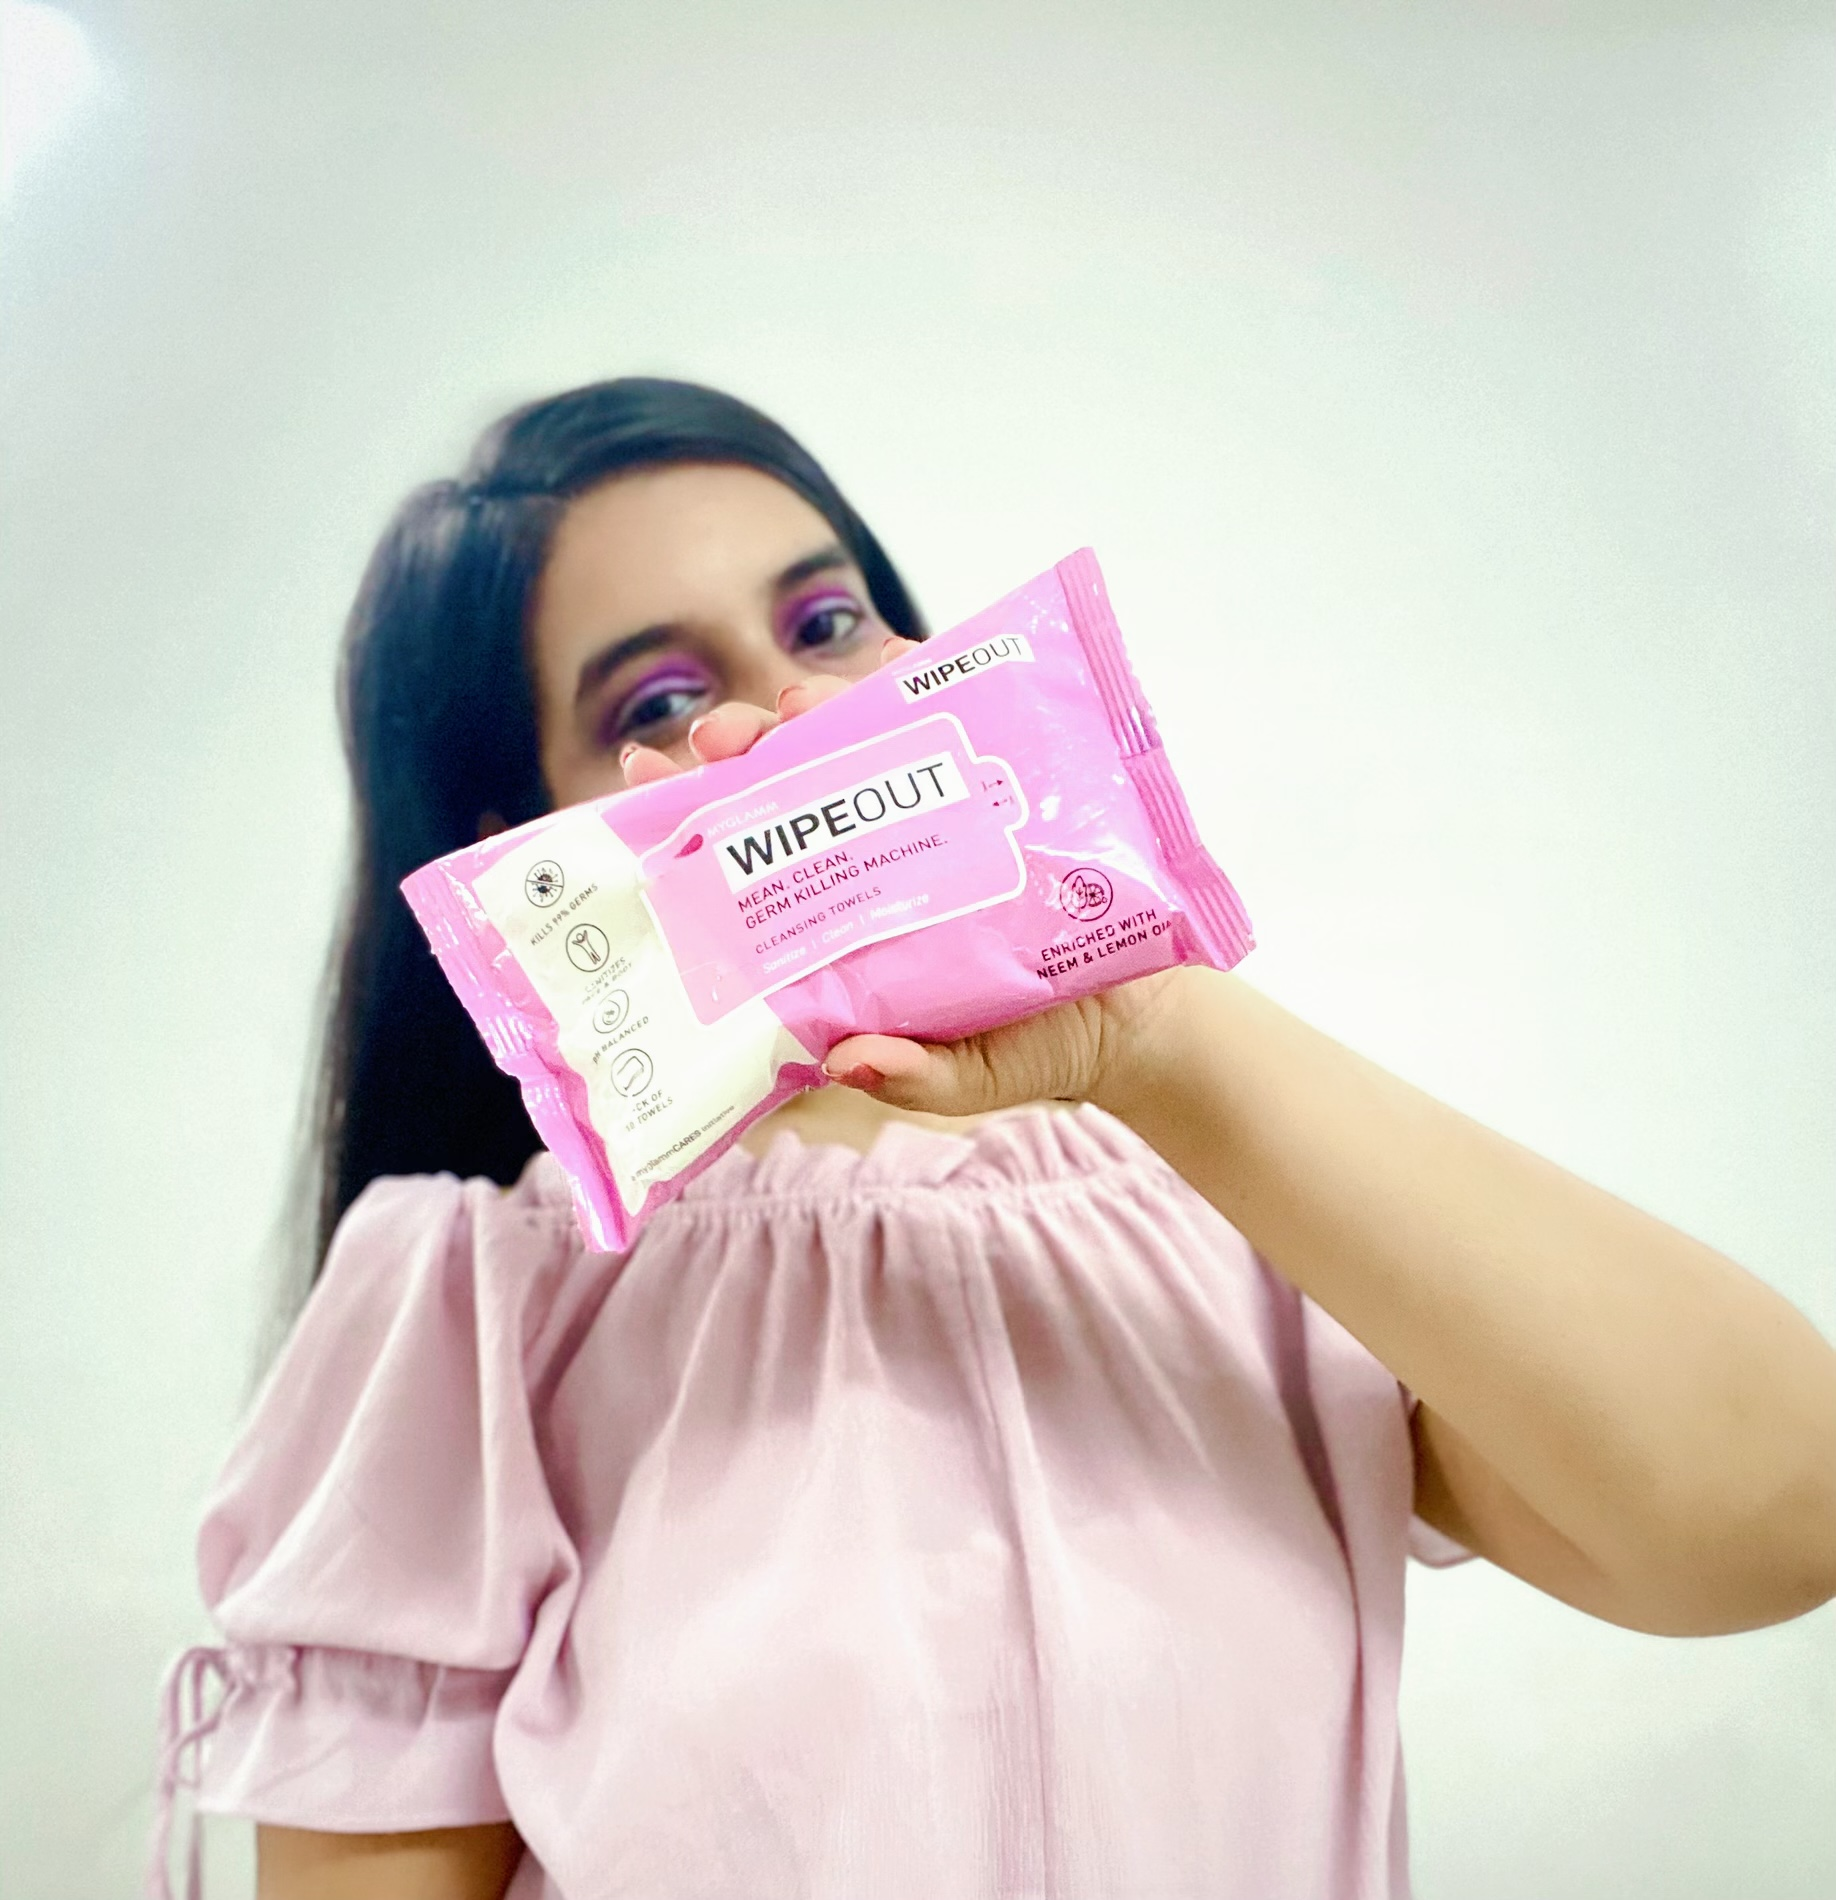 MyGlamm Wipeout Cleansing Towels-Really a great product-By meghnatilokani-2